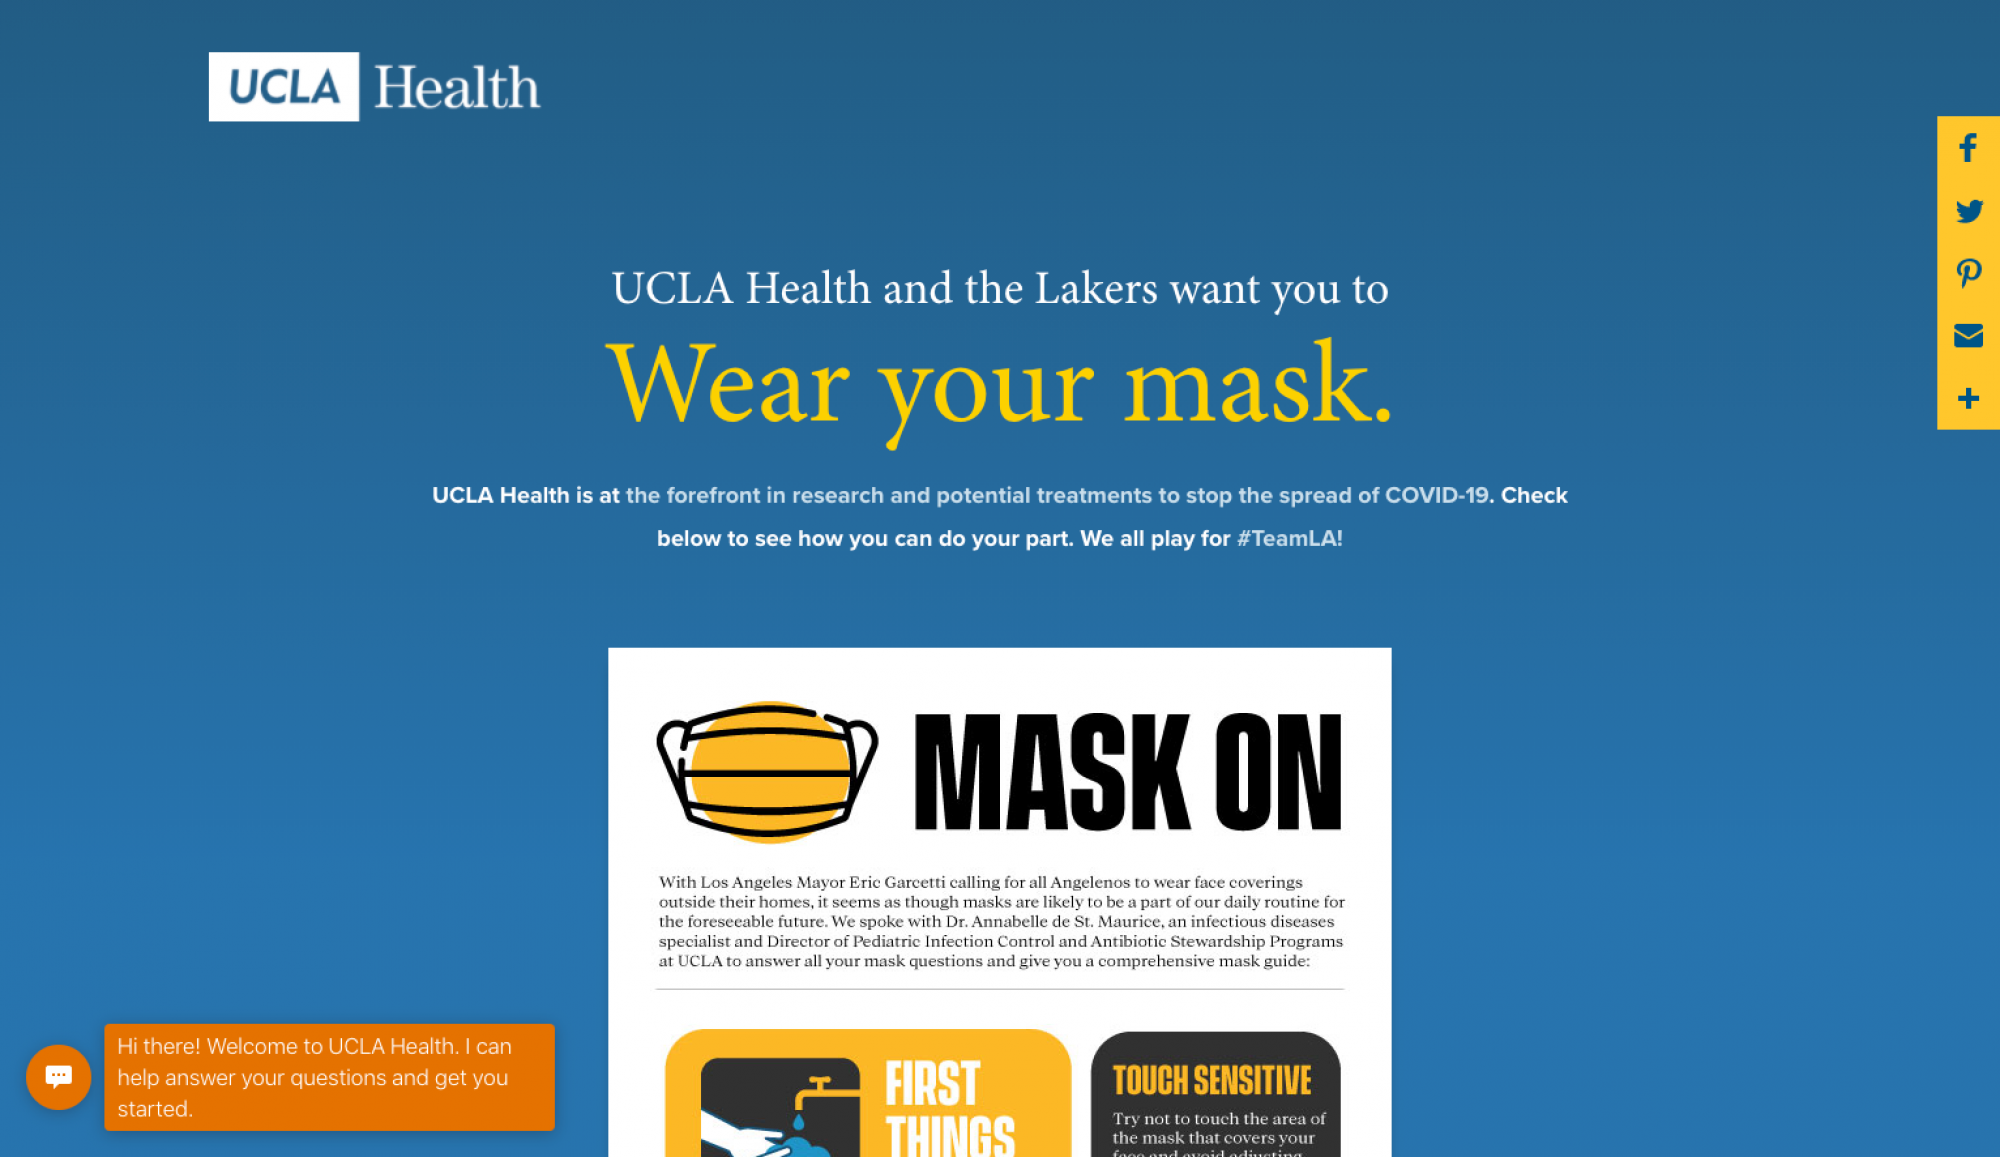 UCLA Health and the Lakers want you to WEAR YOUR MASK Team LA